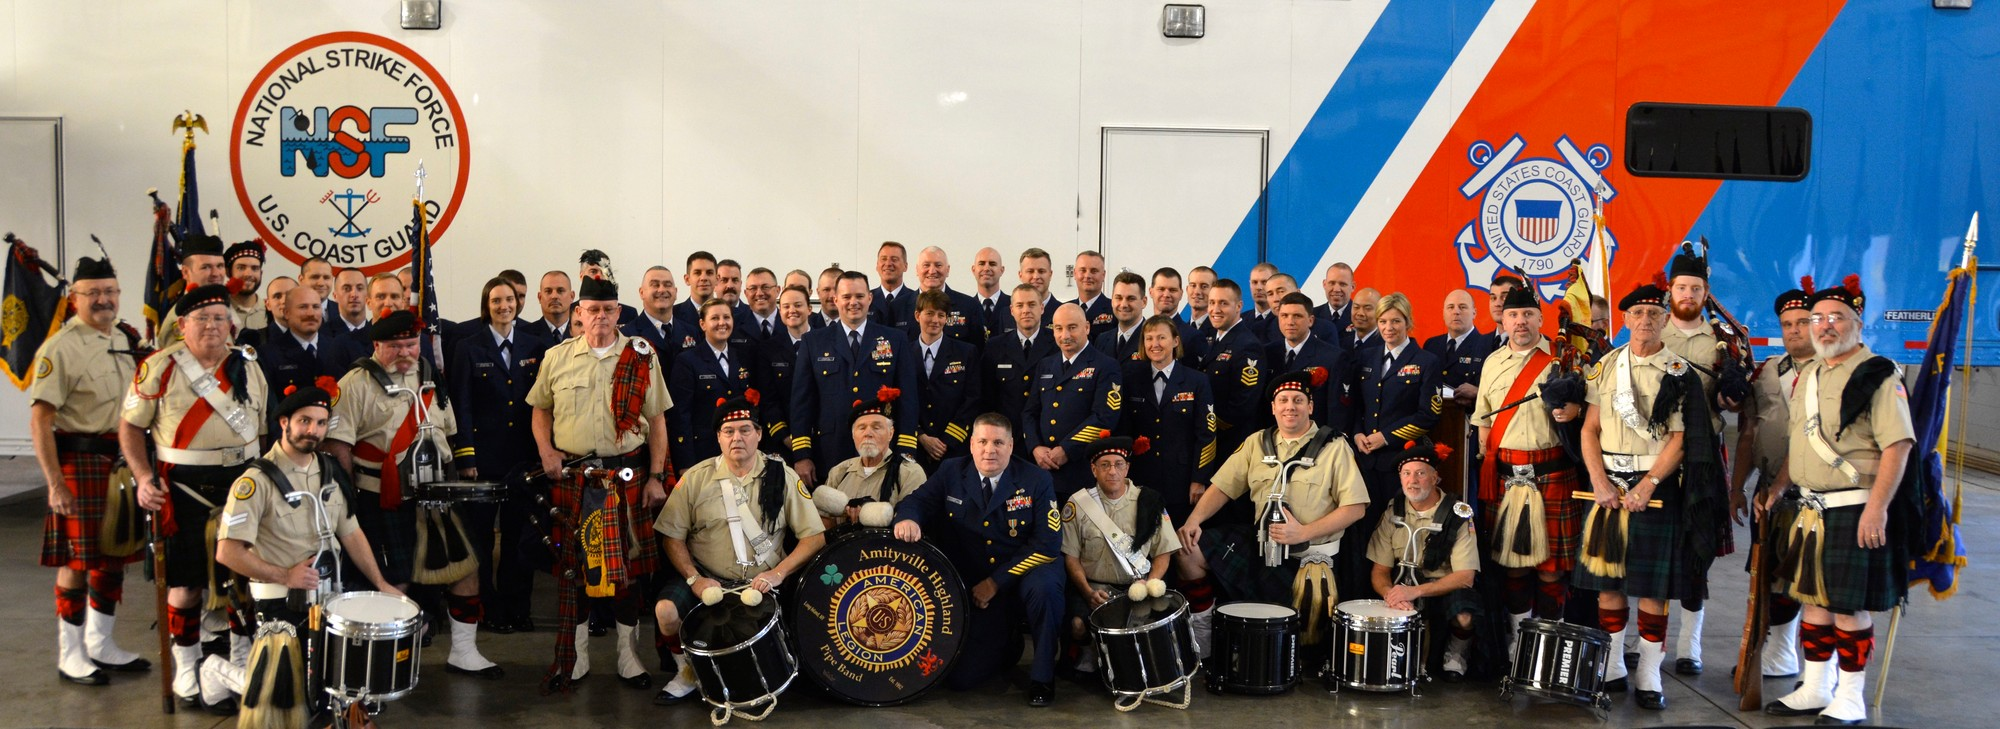 Chief Sean Lynch, kneeling in center, with his Atlantic Strike Team Unit shipmates and members of the Amityville Highland Pipe Band.